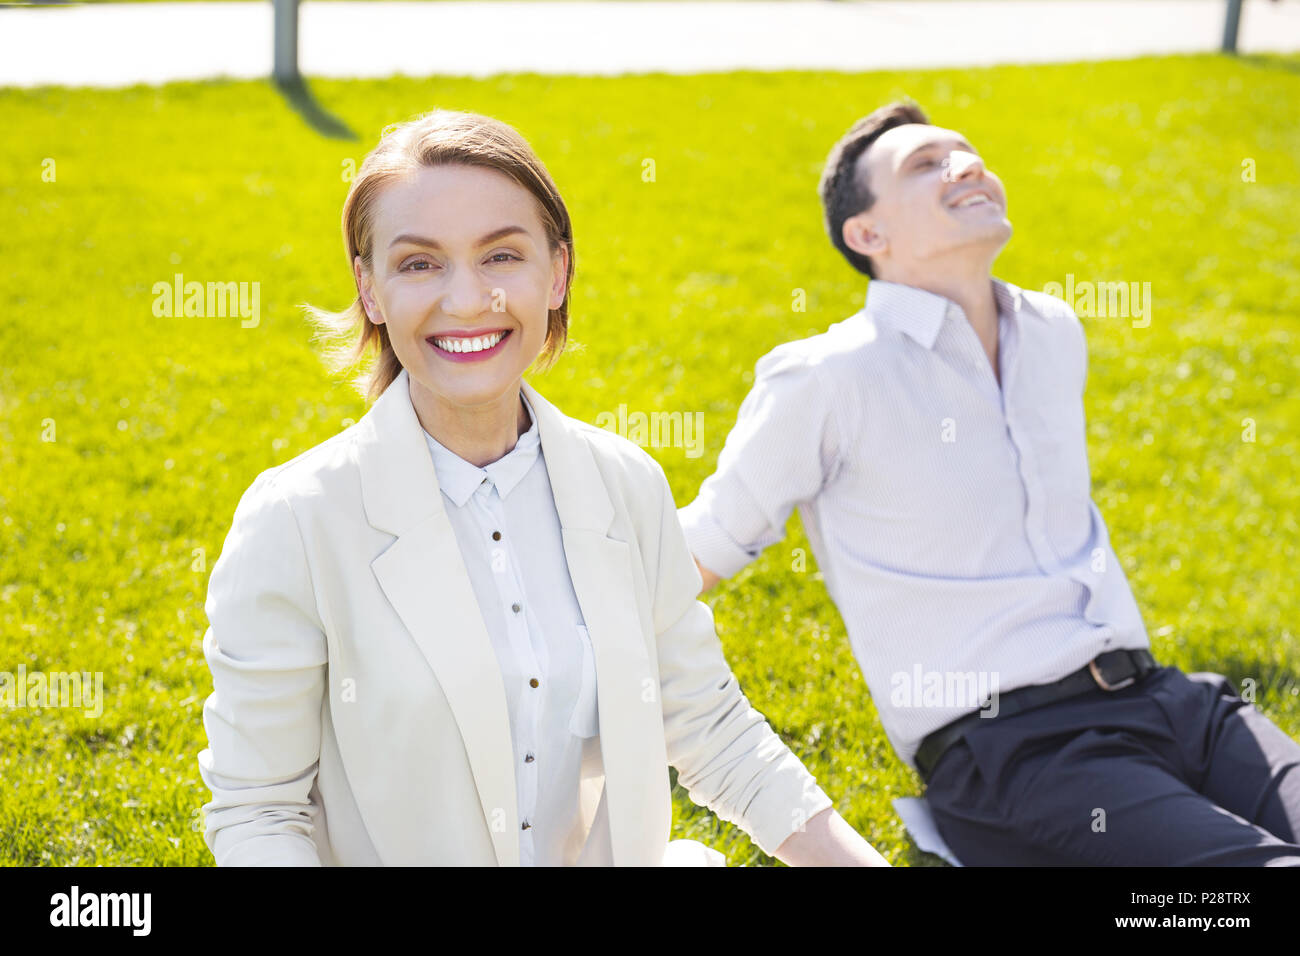 Smiling businesswoman with short haircut smiling broadly - Stock Image